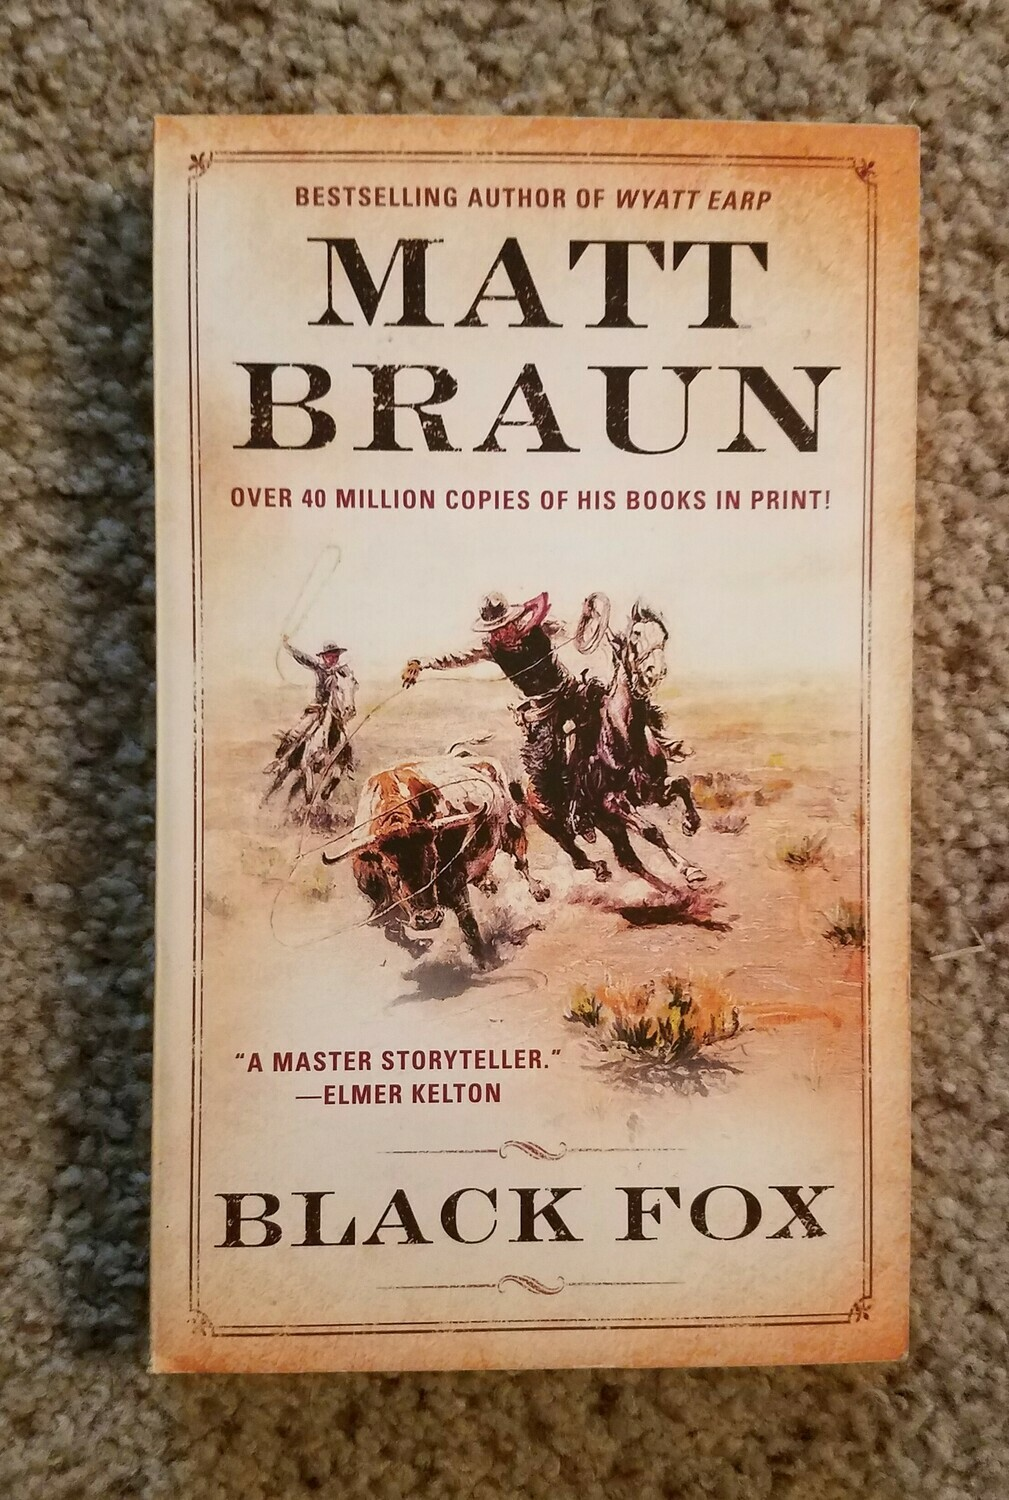 Black Fox by Matt Braun